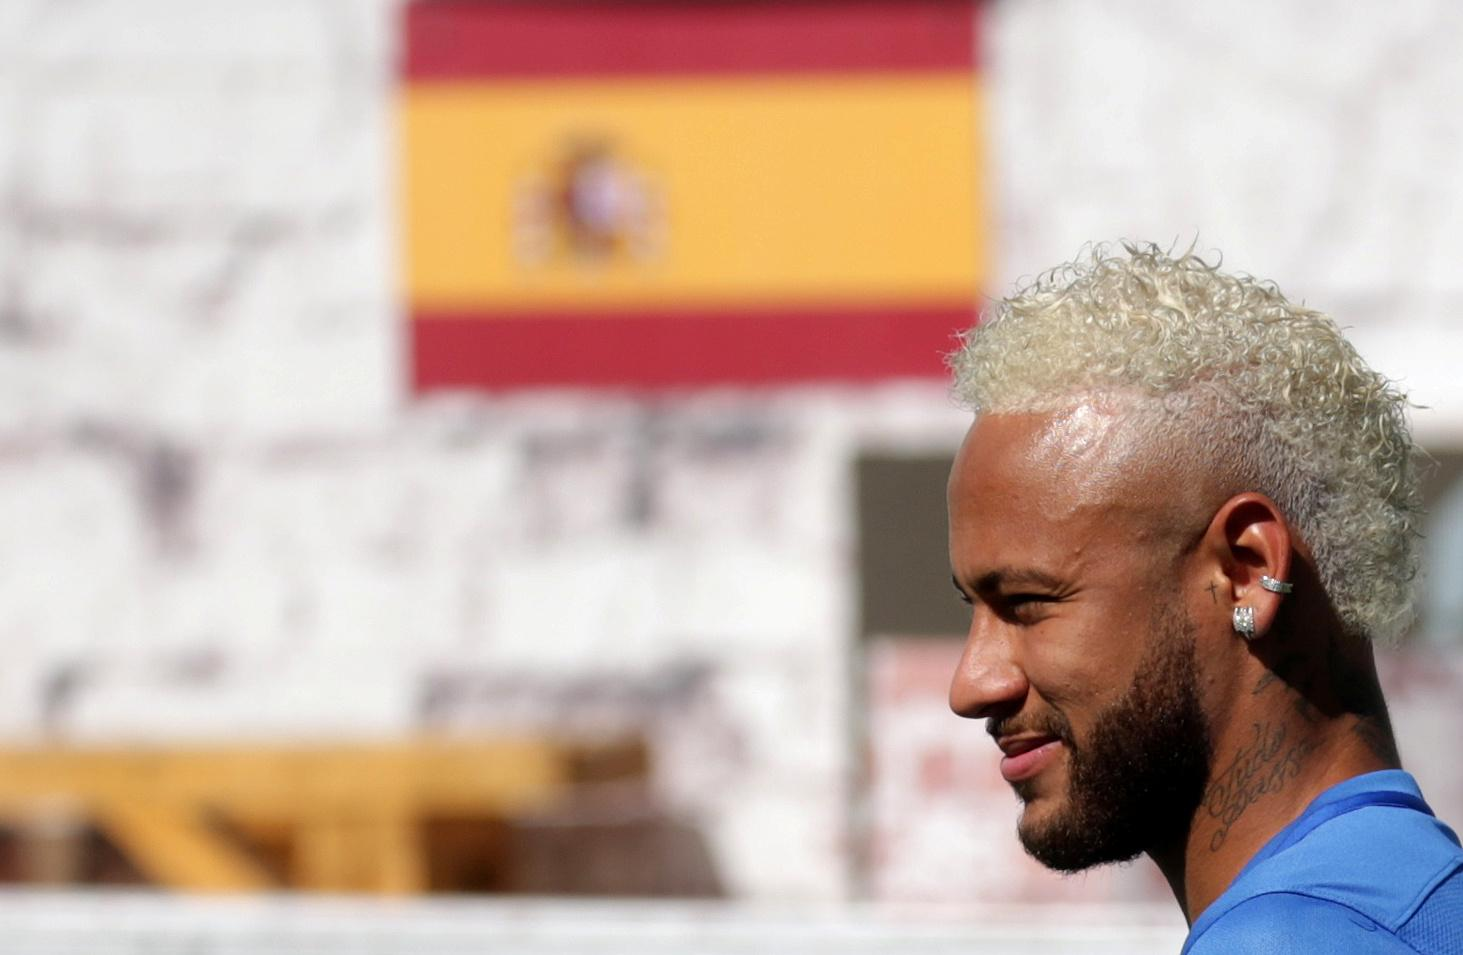 Neymar raises new speculation about Barca with social media post